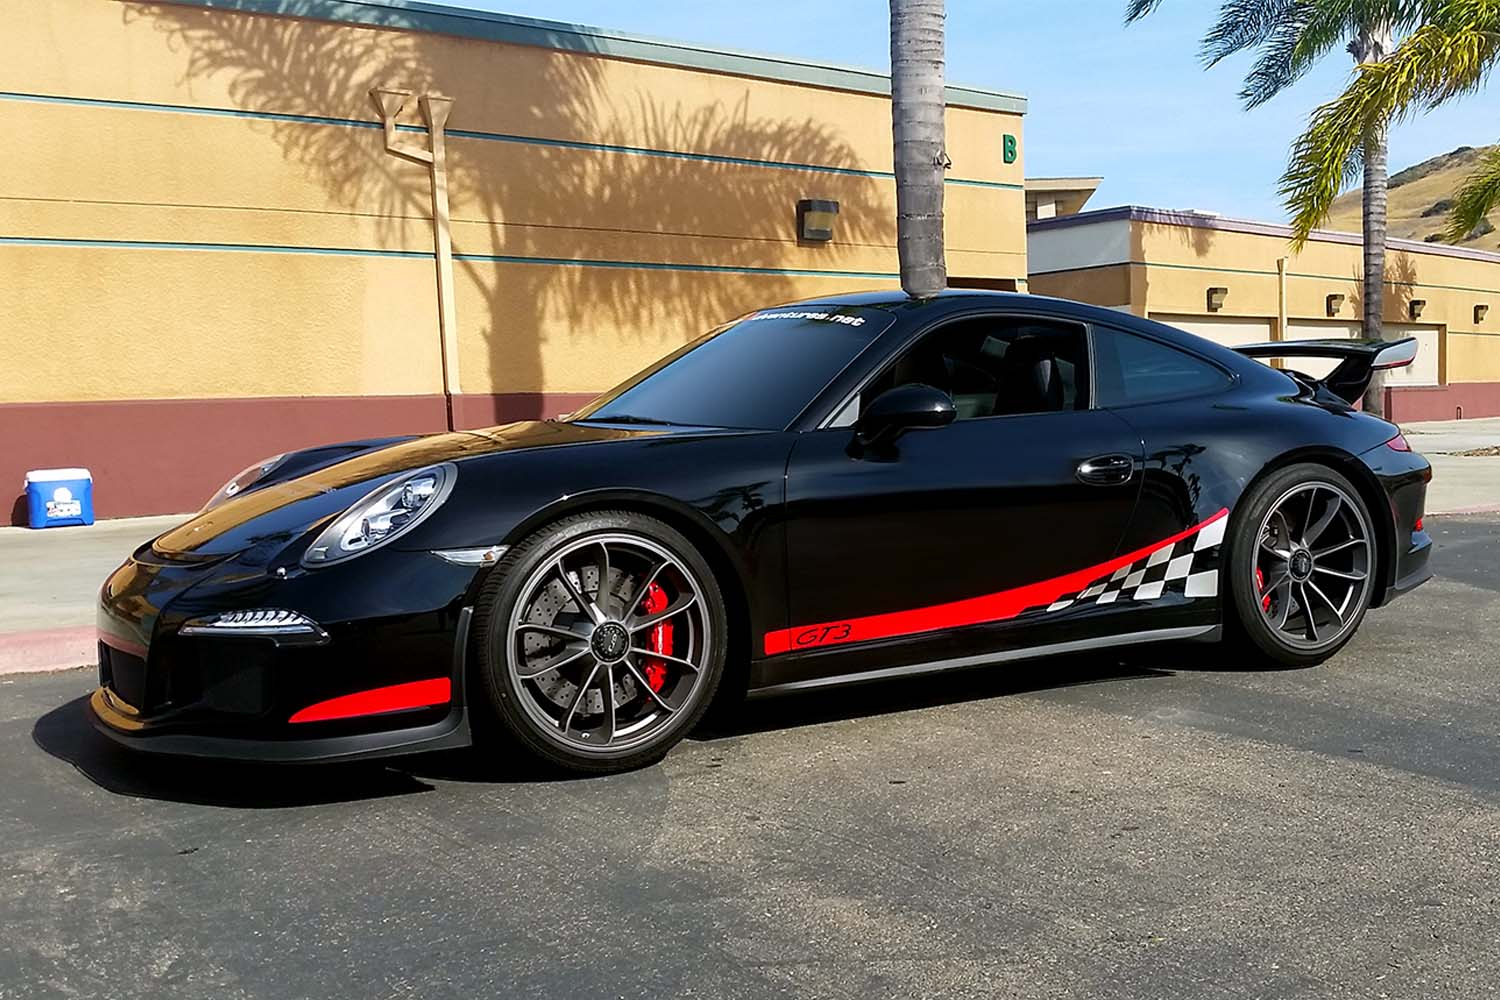 Full Wraps For Vehicles Custom Full Vehicle Wraps San Diego